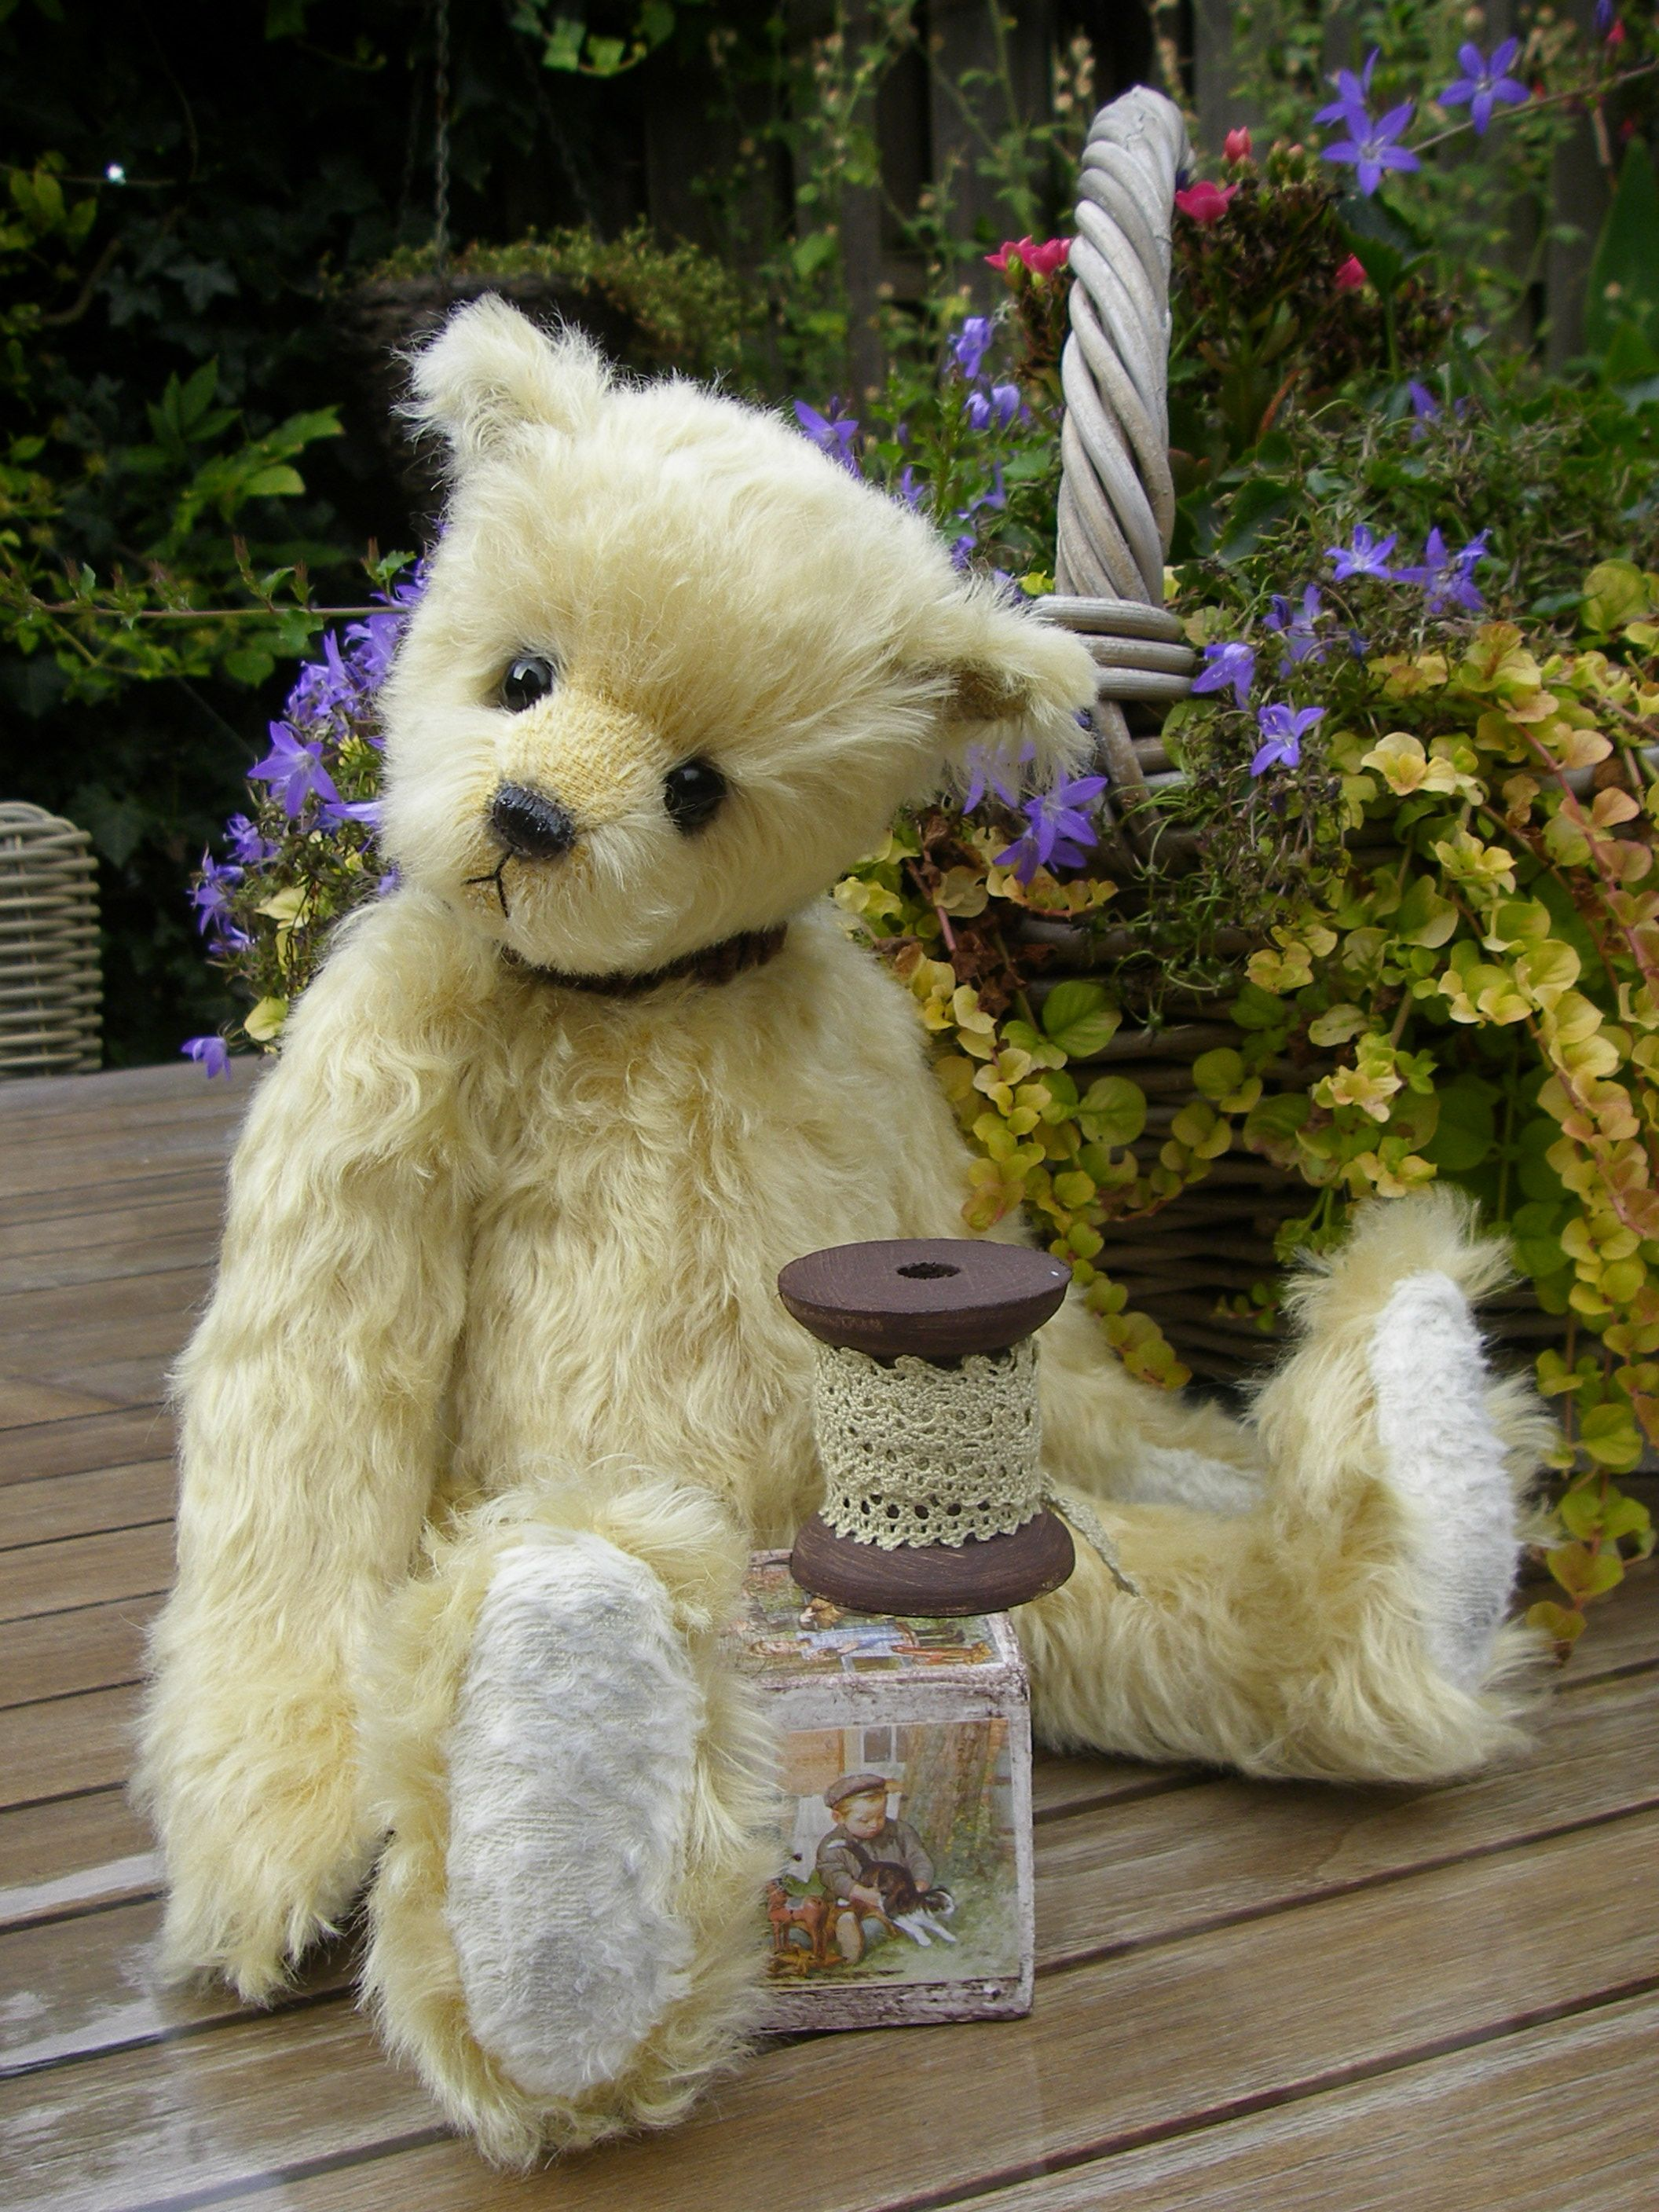 Vinny, a traditional teddy. Made of soft mohair.